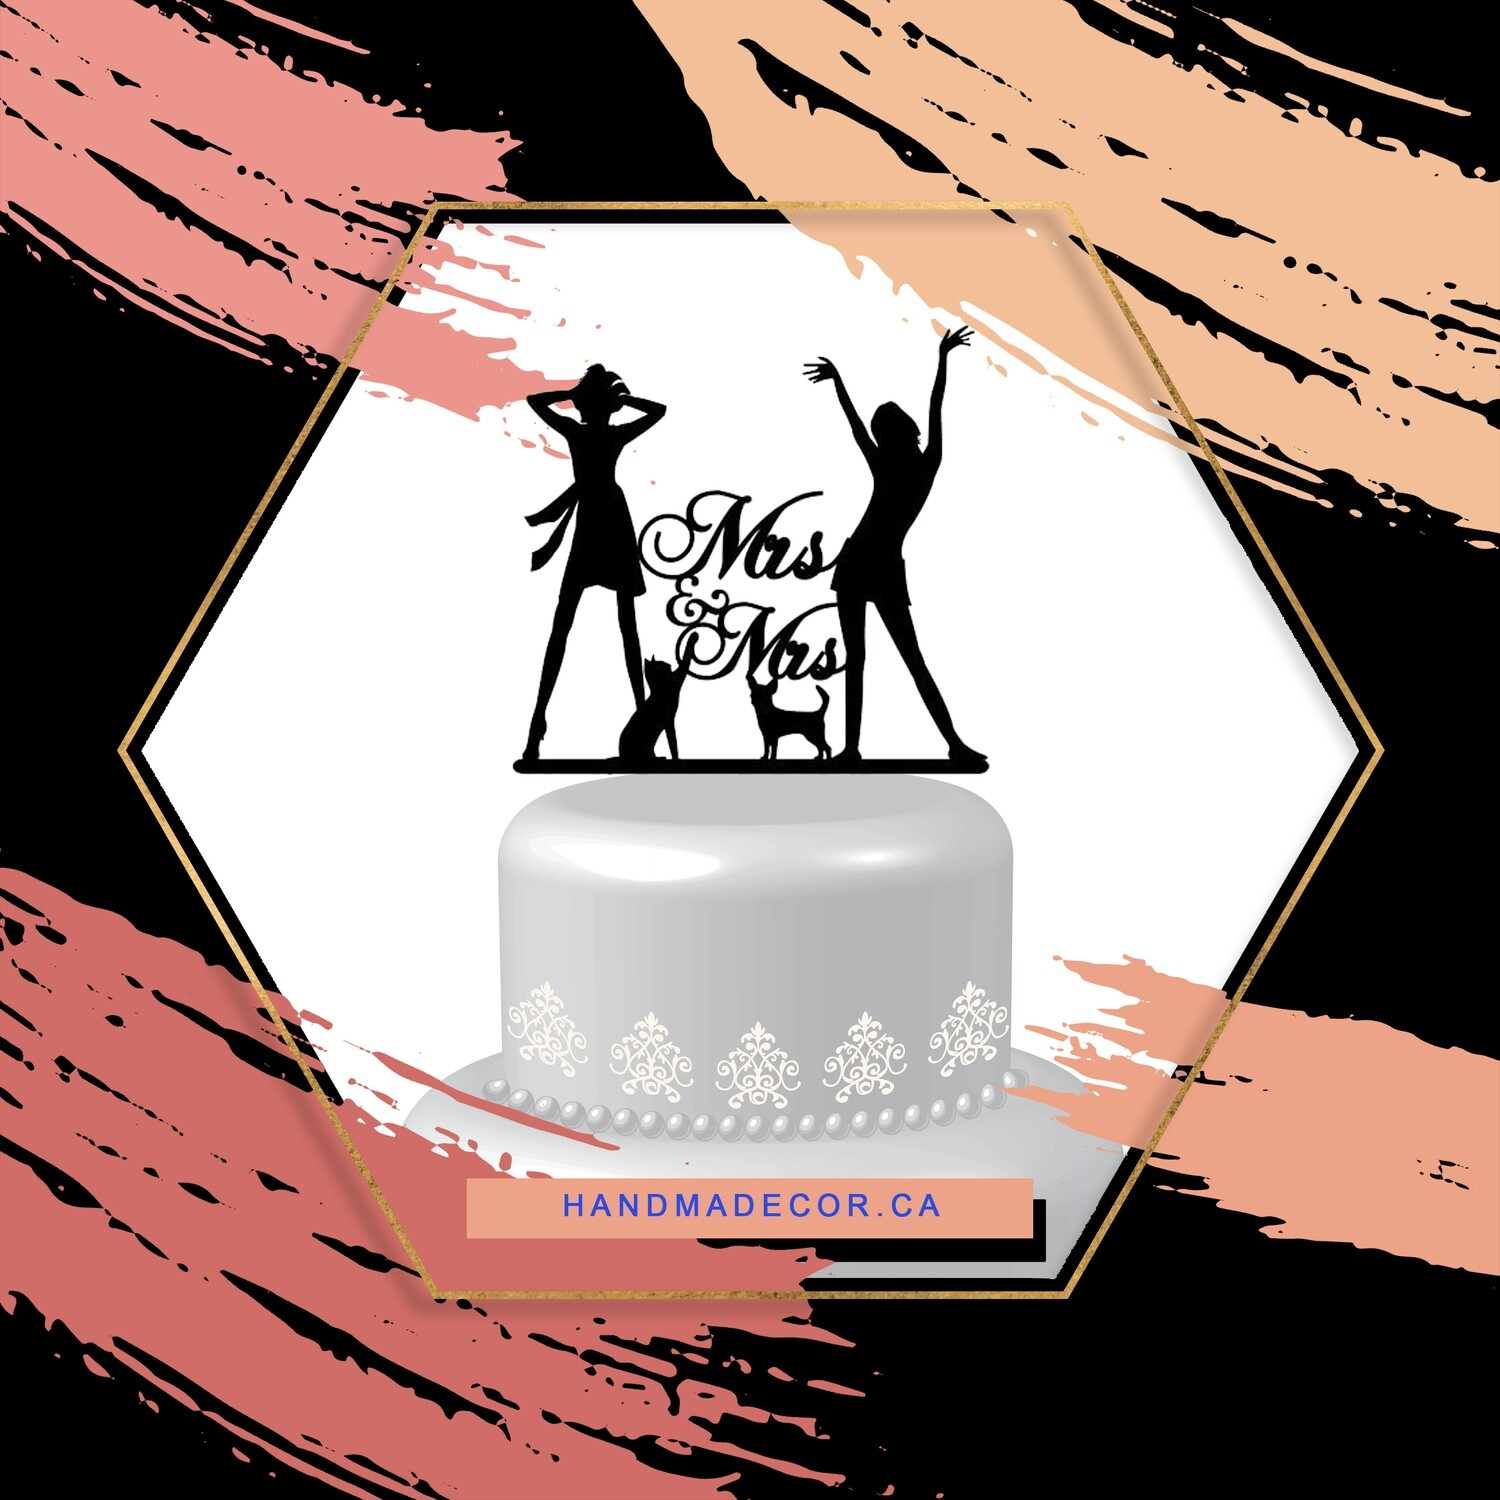 Acrylic Lesbian Wedding Cake Toppers Mrs and Mrs 2 Brides Wedding Cake Toppers with Dog Cat Wedding Cake Decorations